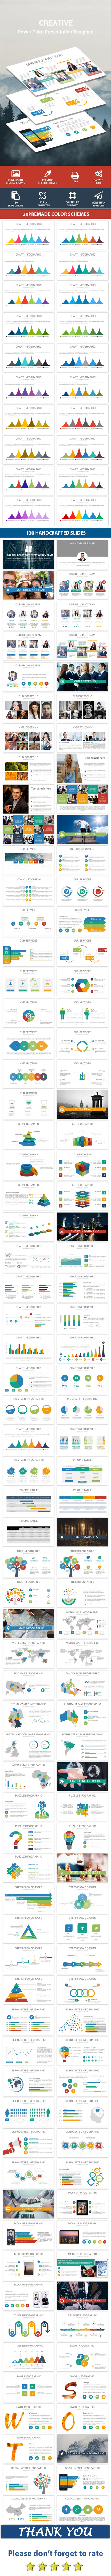 Creative PowerPoint Presentation Template - PowerPoint Templates Presentation Templates